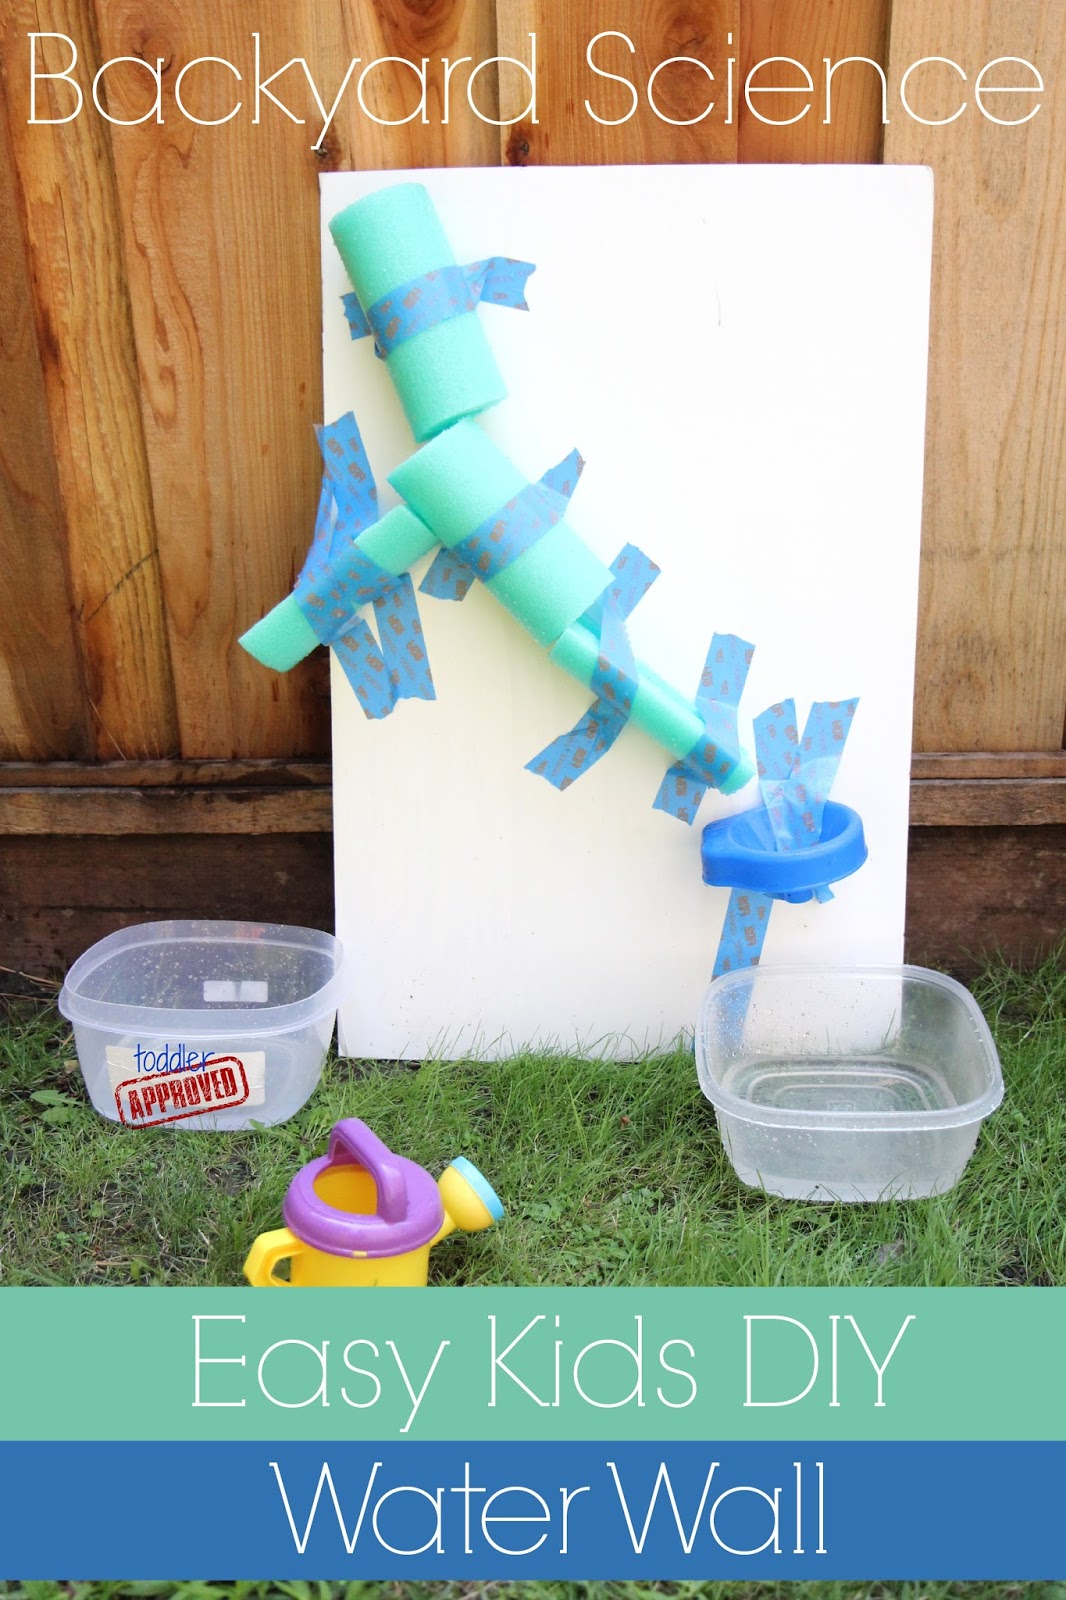 Toddler Approved Easy Diy Water Wall For Kids Backyard